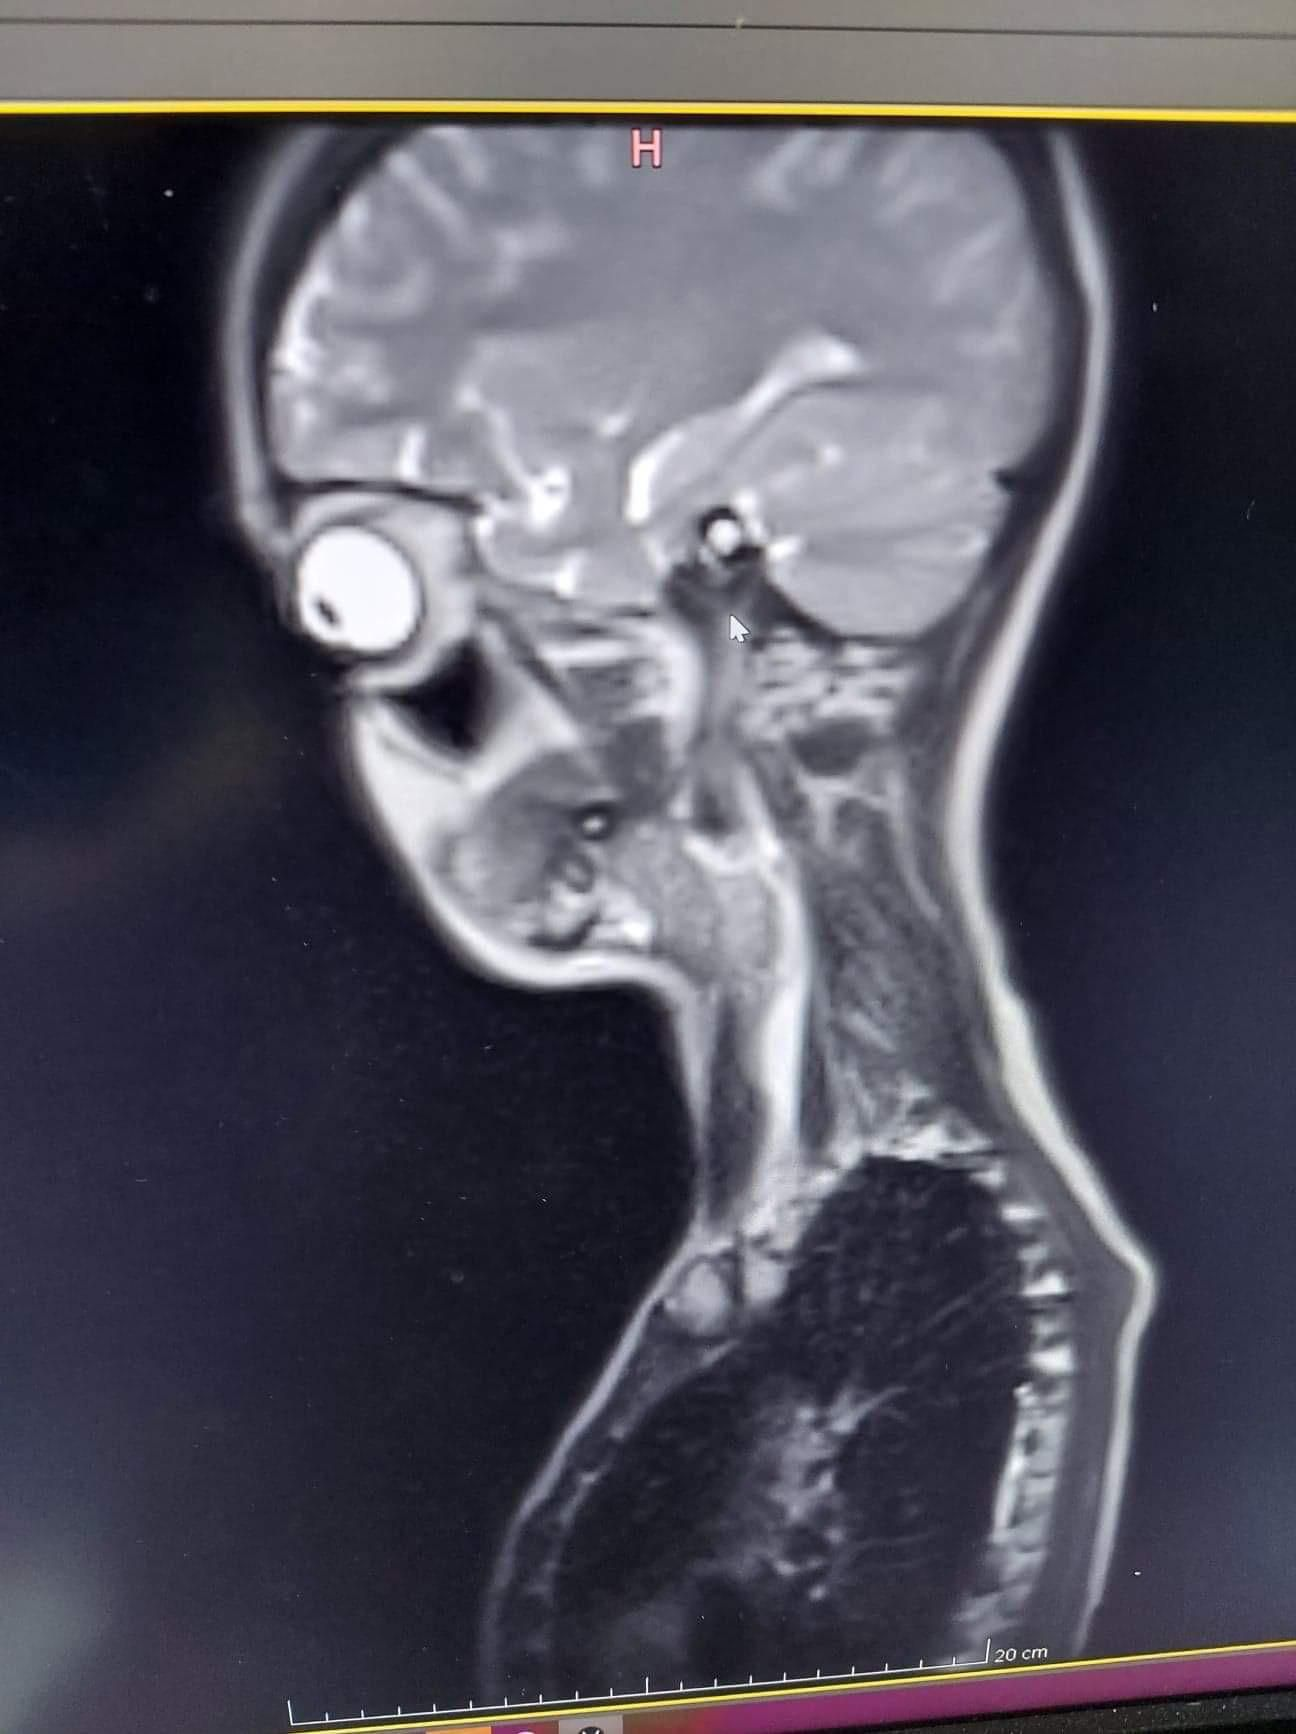 This picture of my MRI